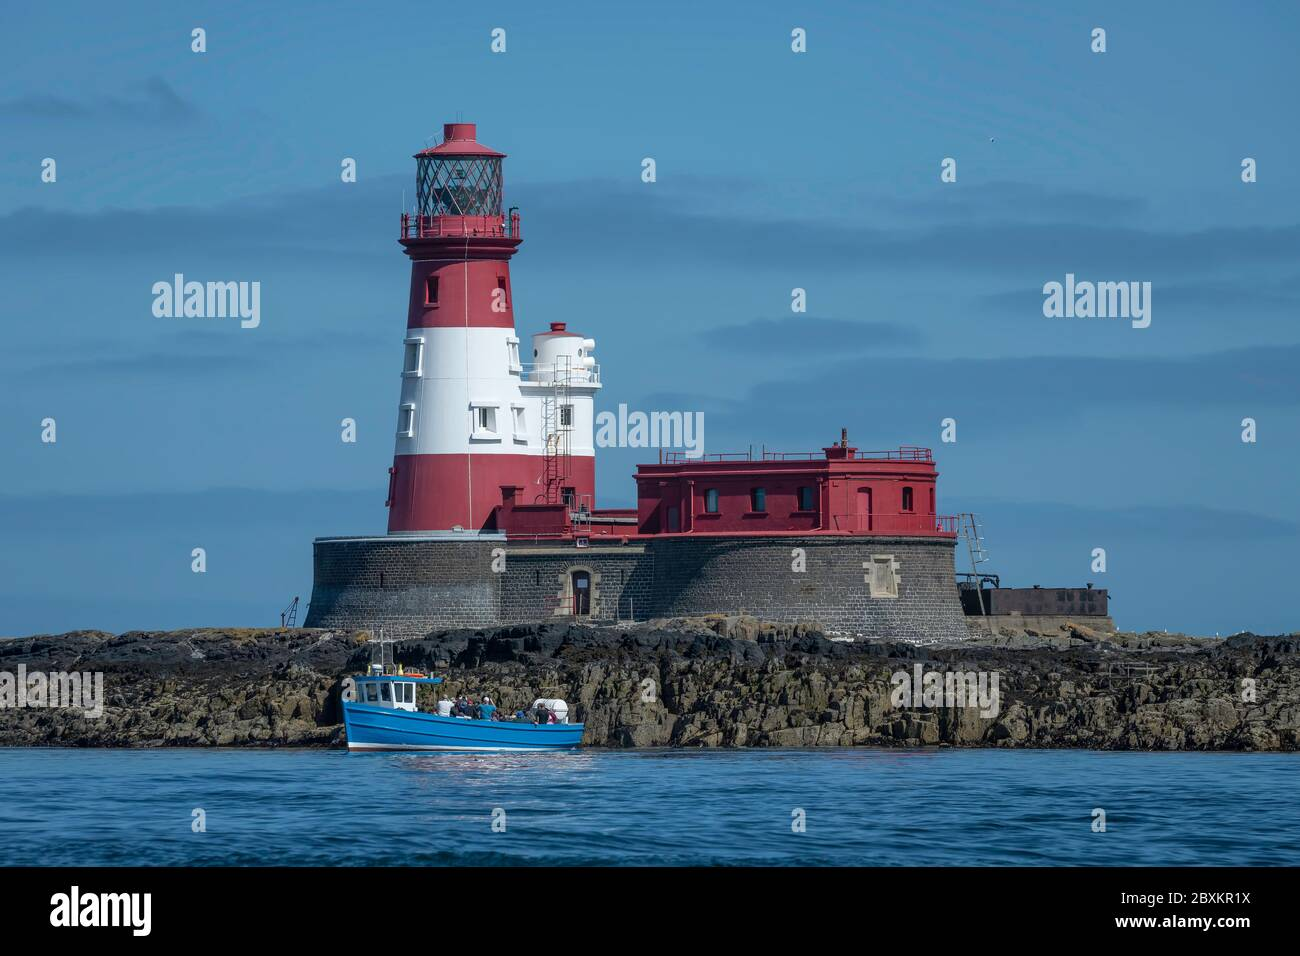 Longstone Lighthouse located in the Farne Islands of the United Kingdom with blue boat in front of it Stock Photo